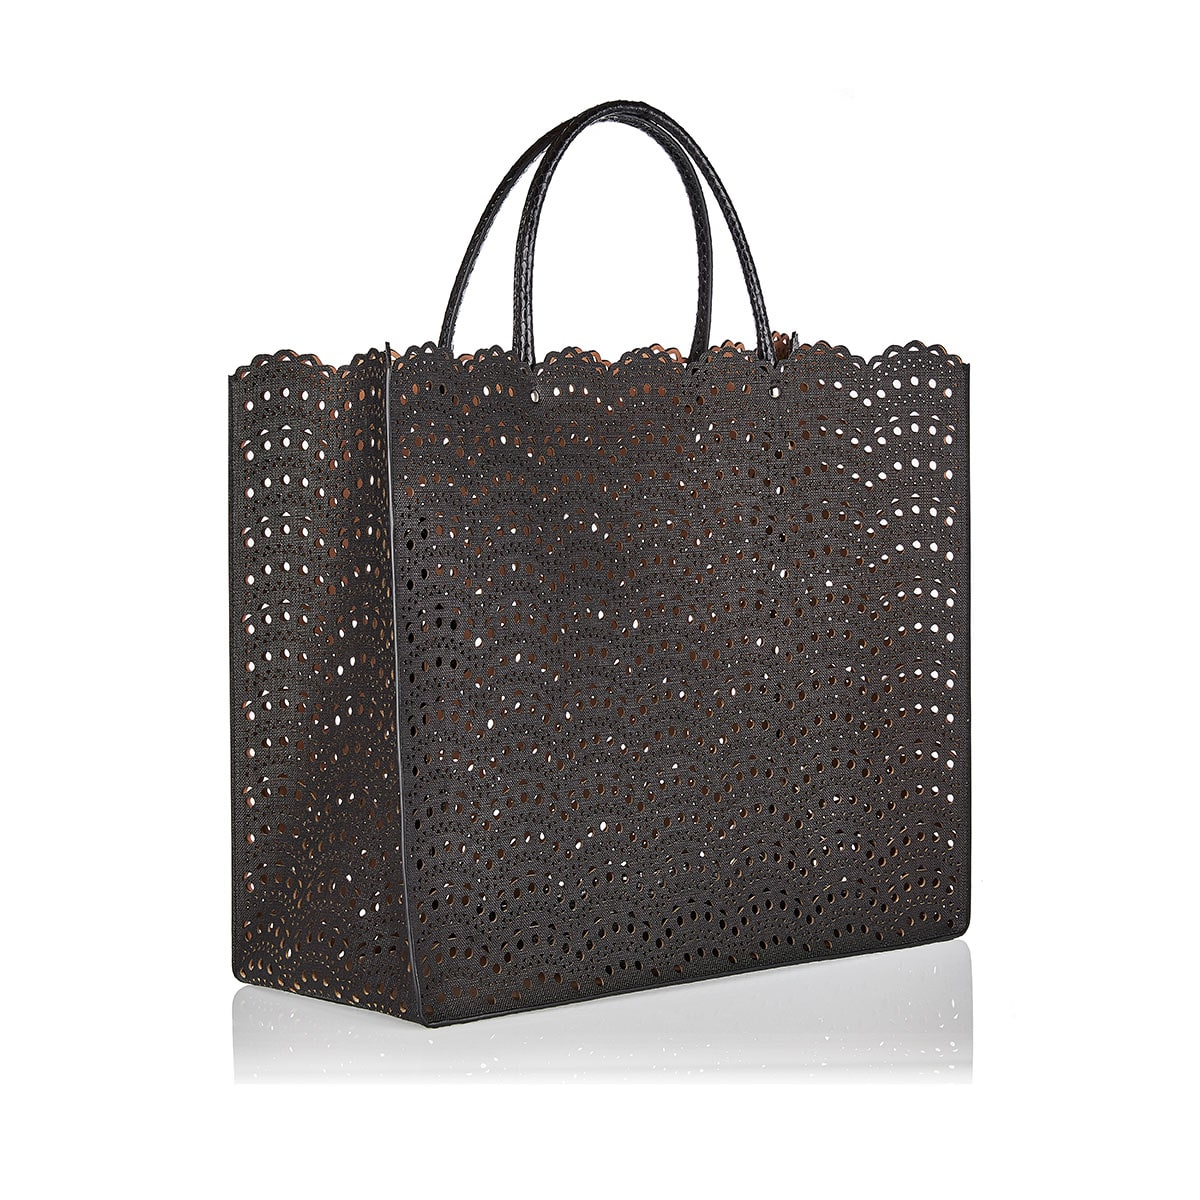 Garance perforated leather large tote